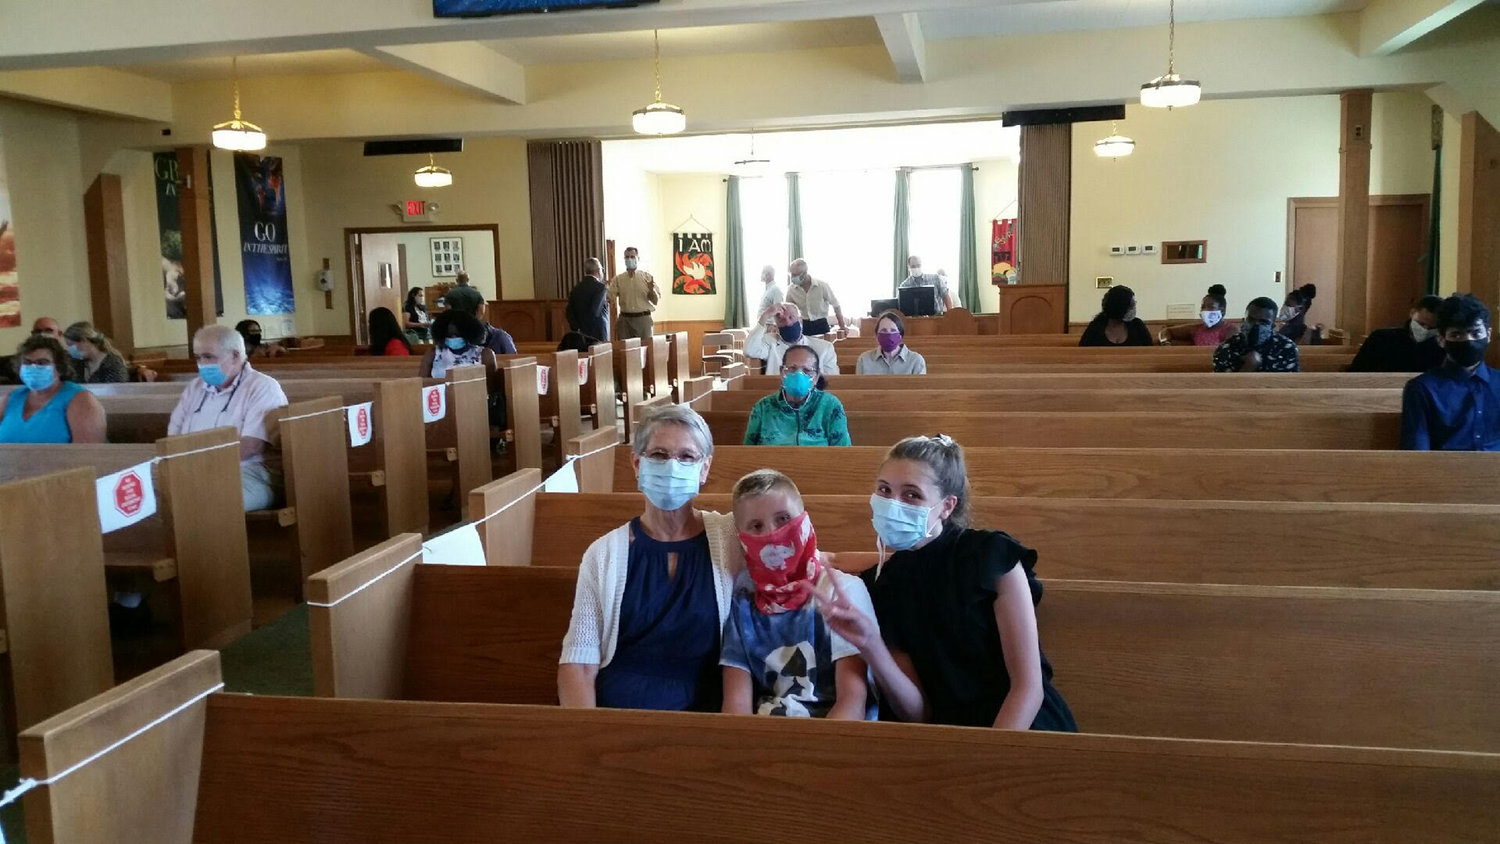 Lynbrook Baptist Church opened with indoor services at the end of July.